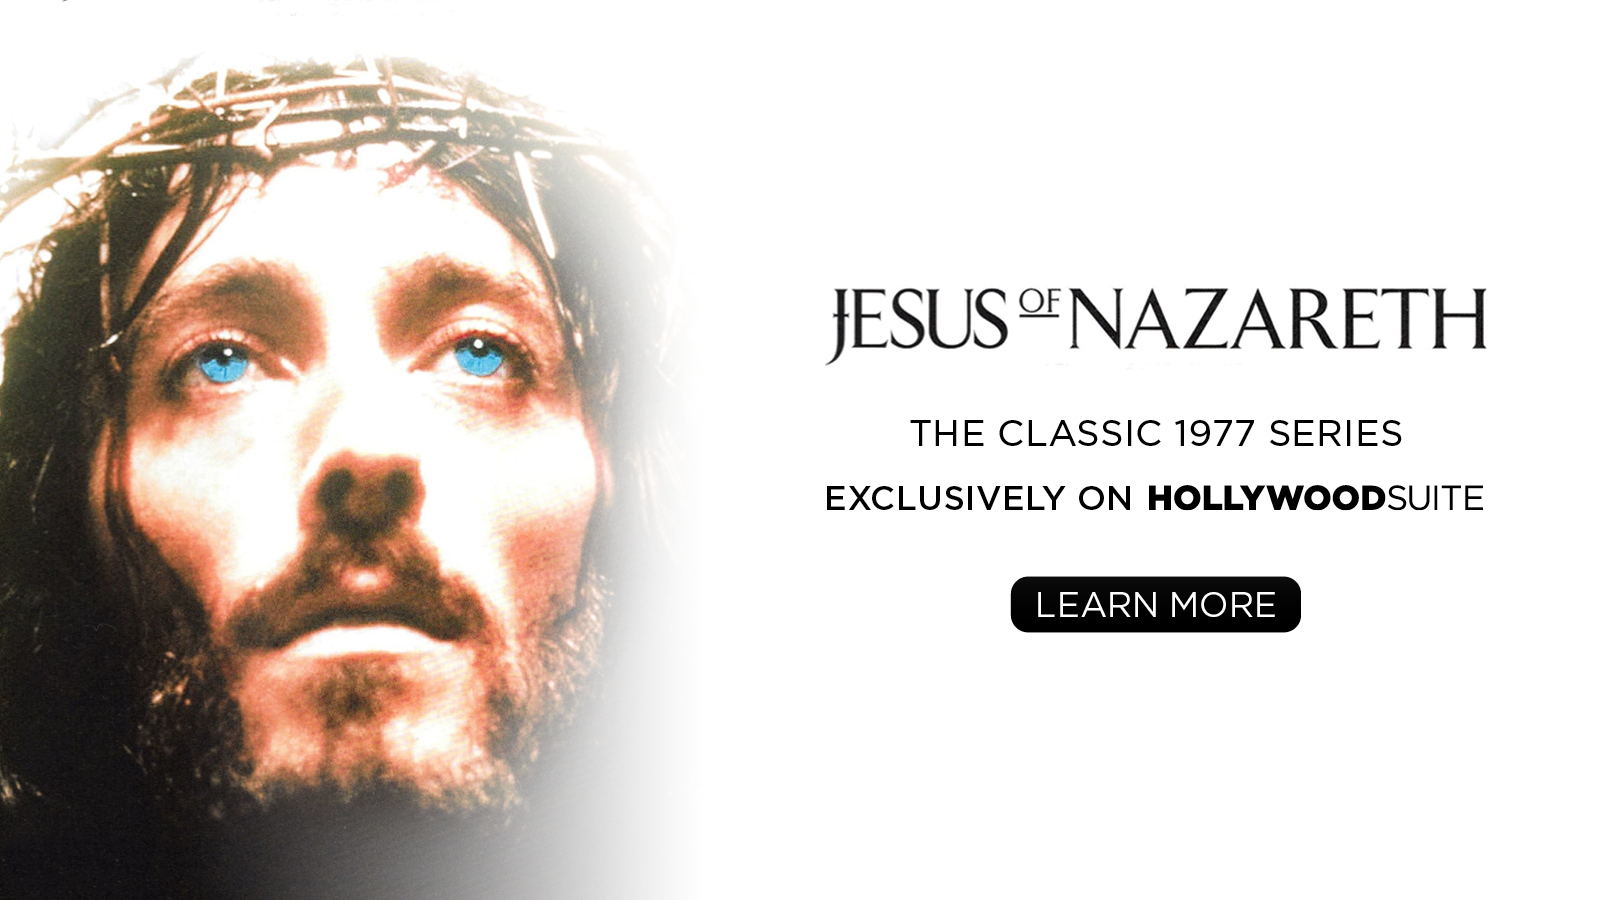 Jesus of Nazareth – The Classic 1977 Series – Exclusively on Hollywood Suite. LEARN MORE